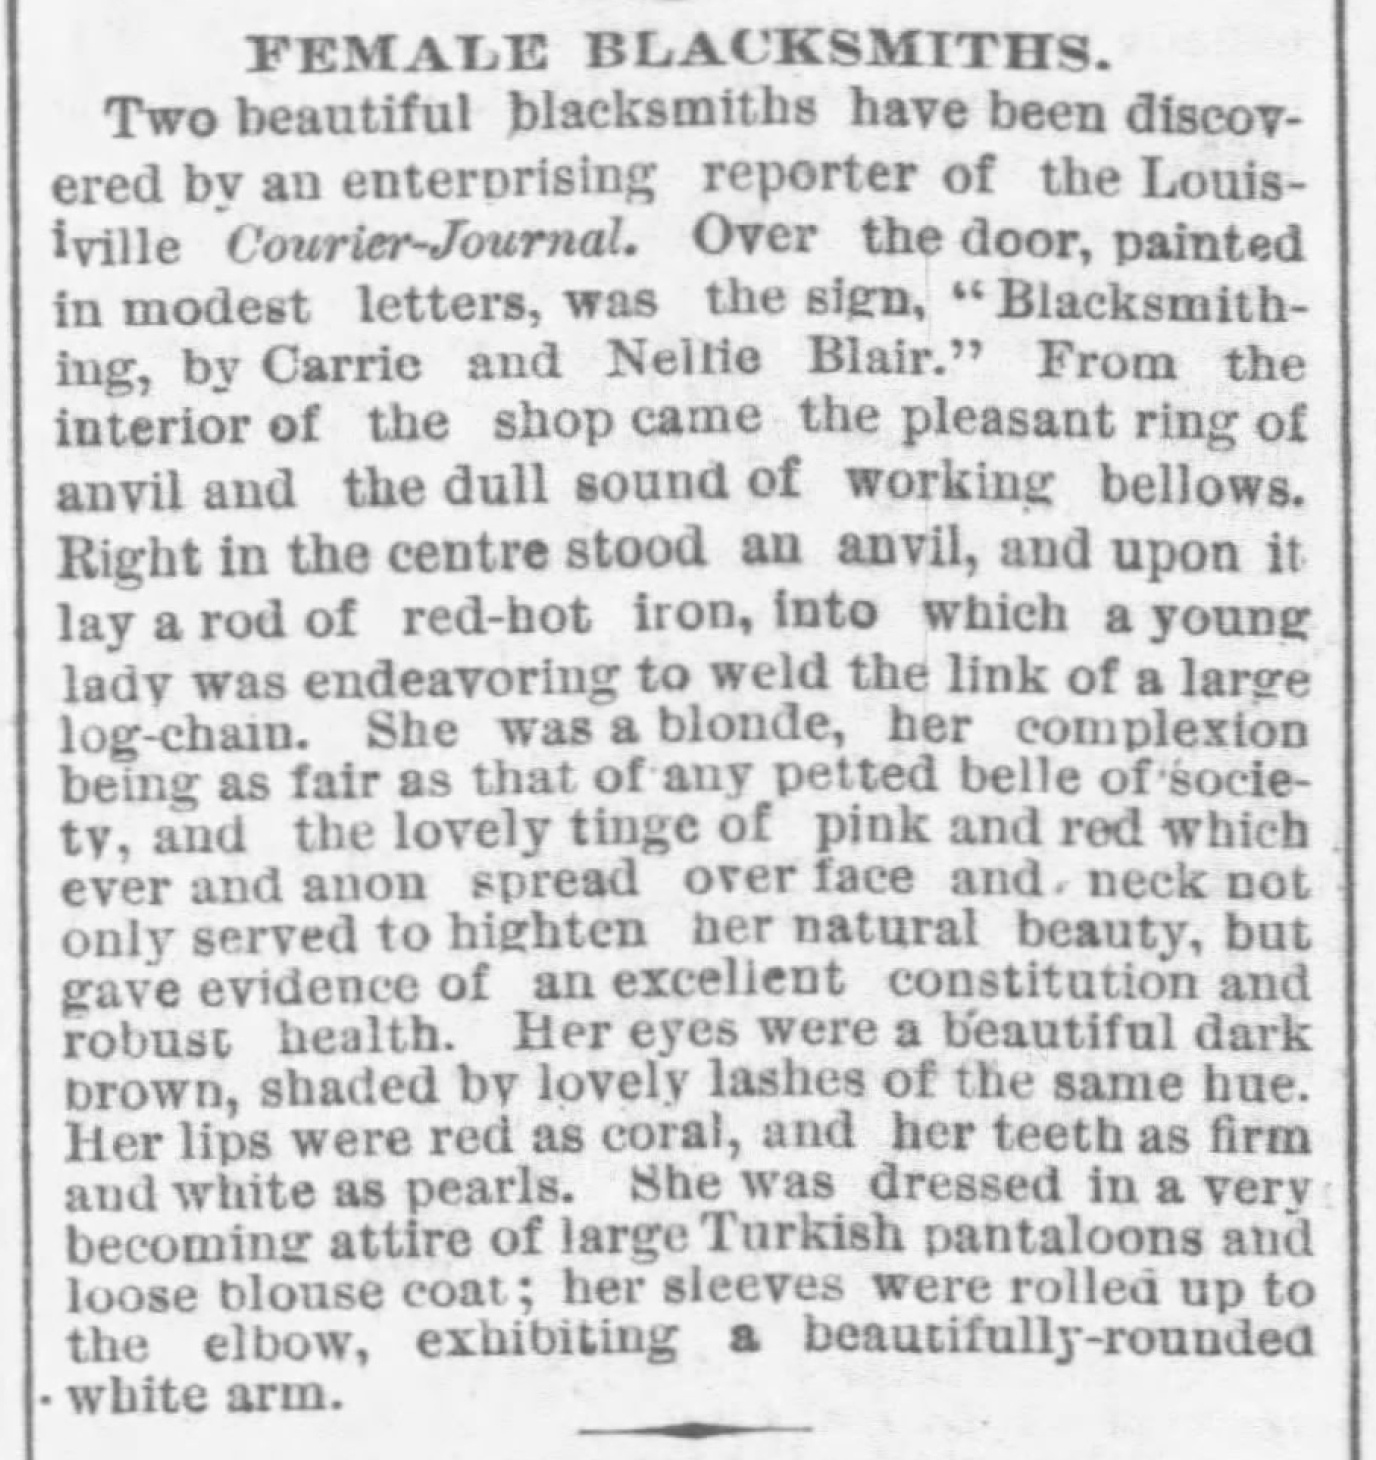 Article published in the Chicago Tribune, Chicago, Illinois, May 13, 1879.